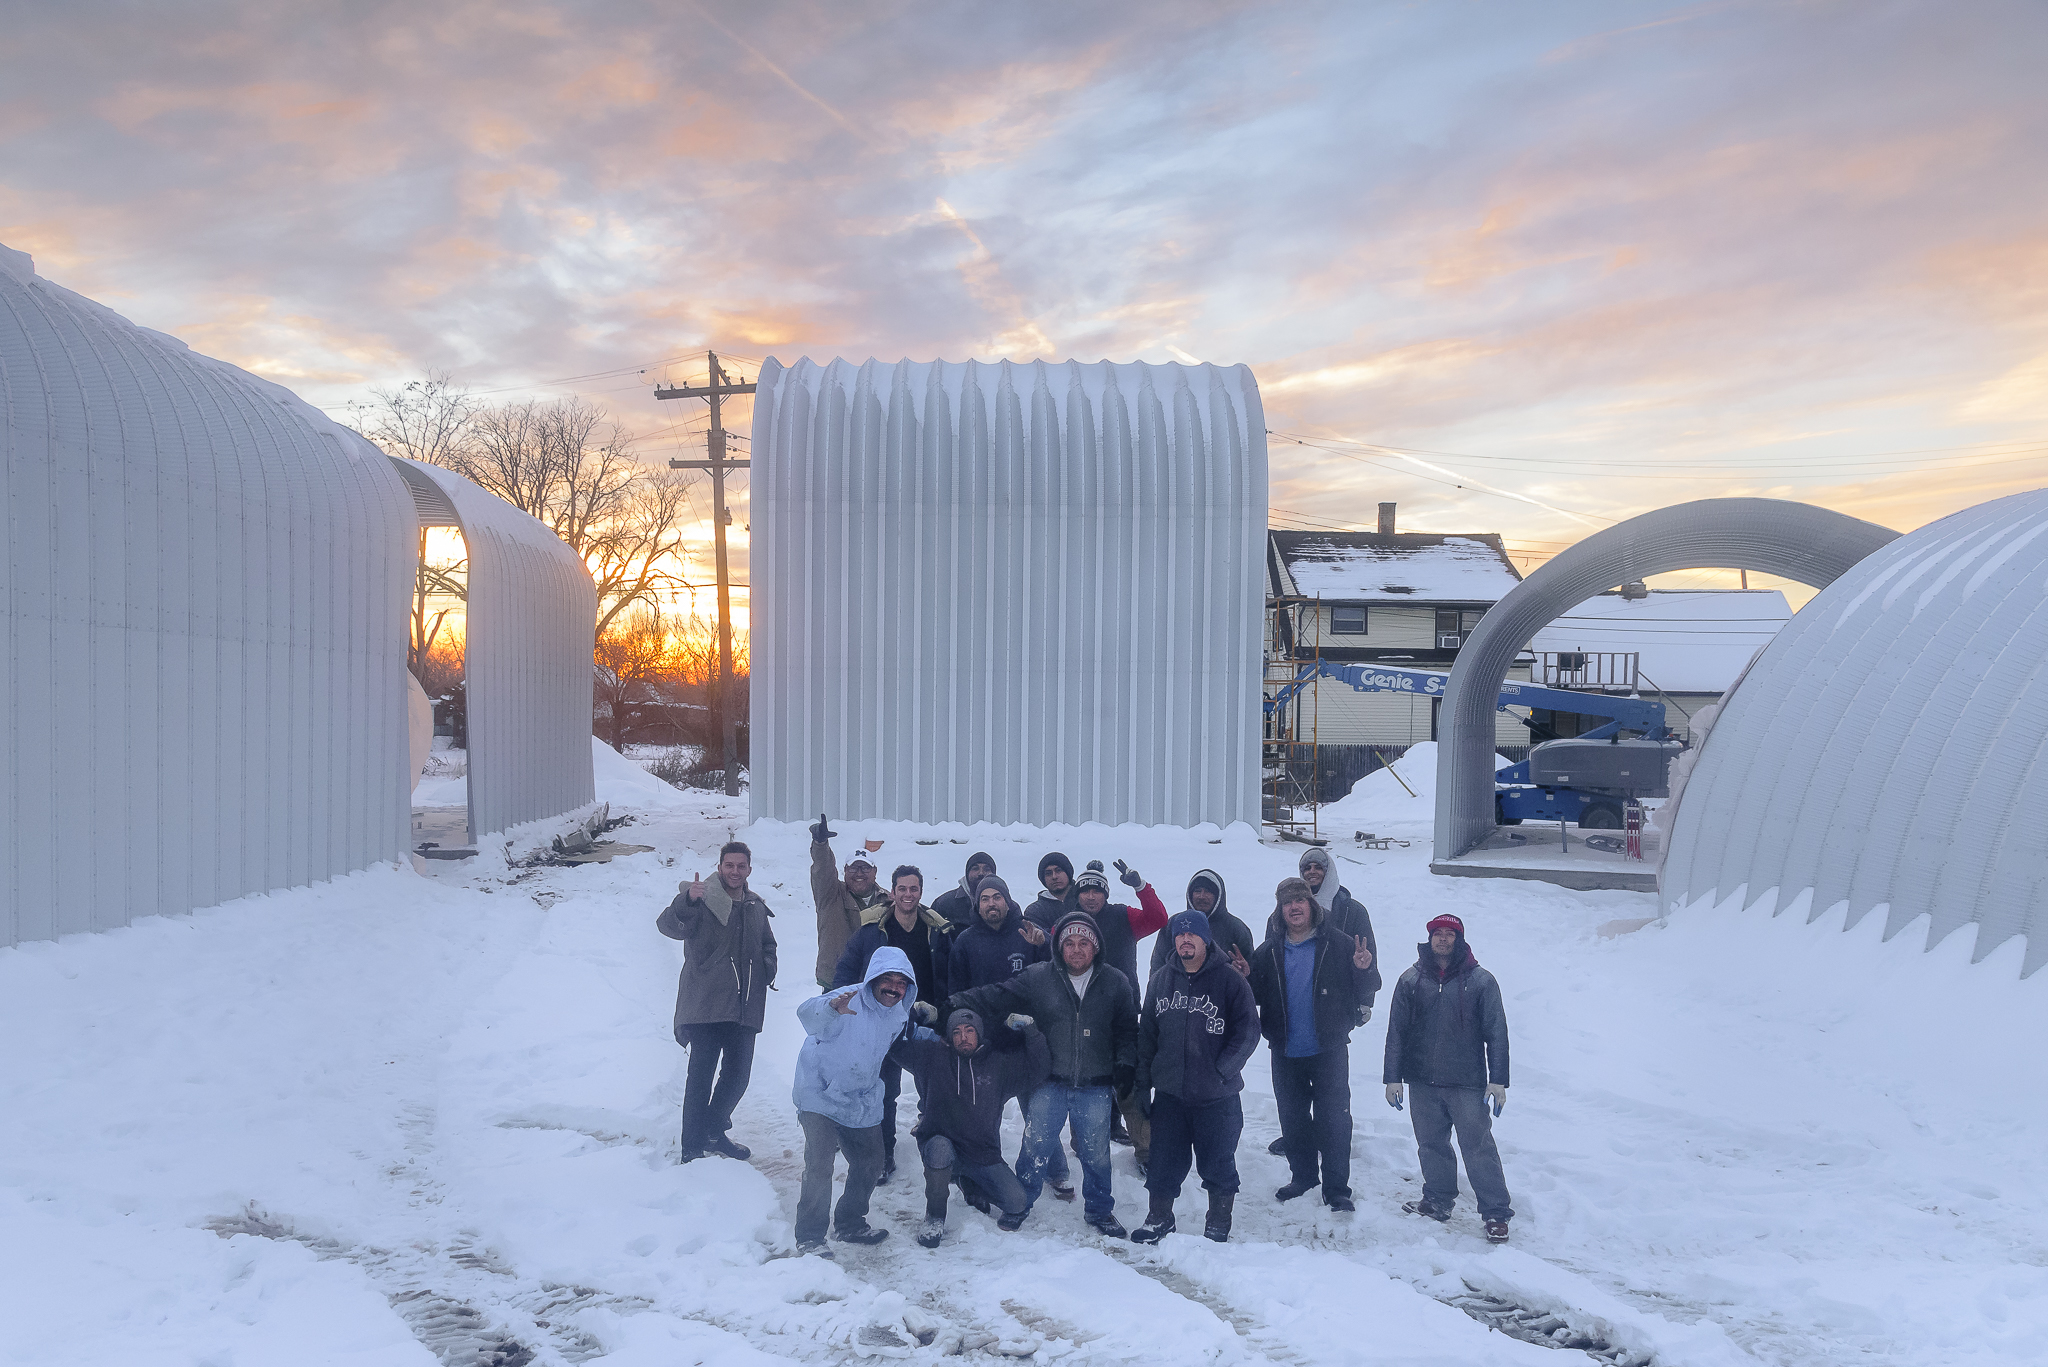 February 2017 - a cold but productive winter for the True North team!